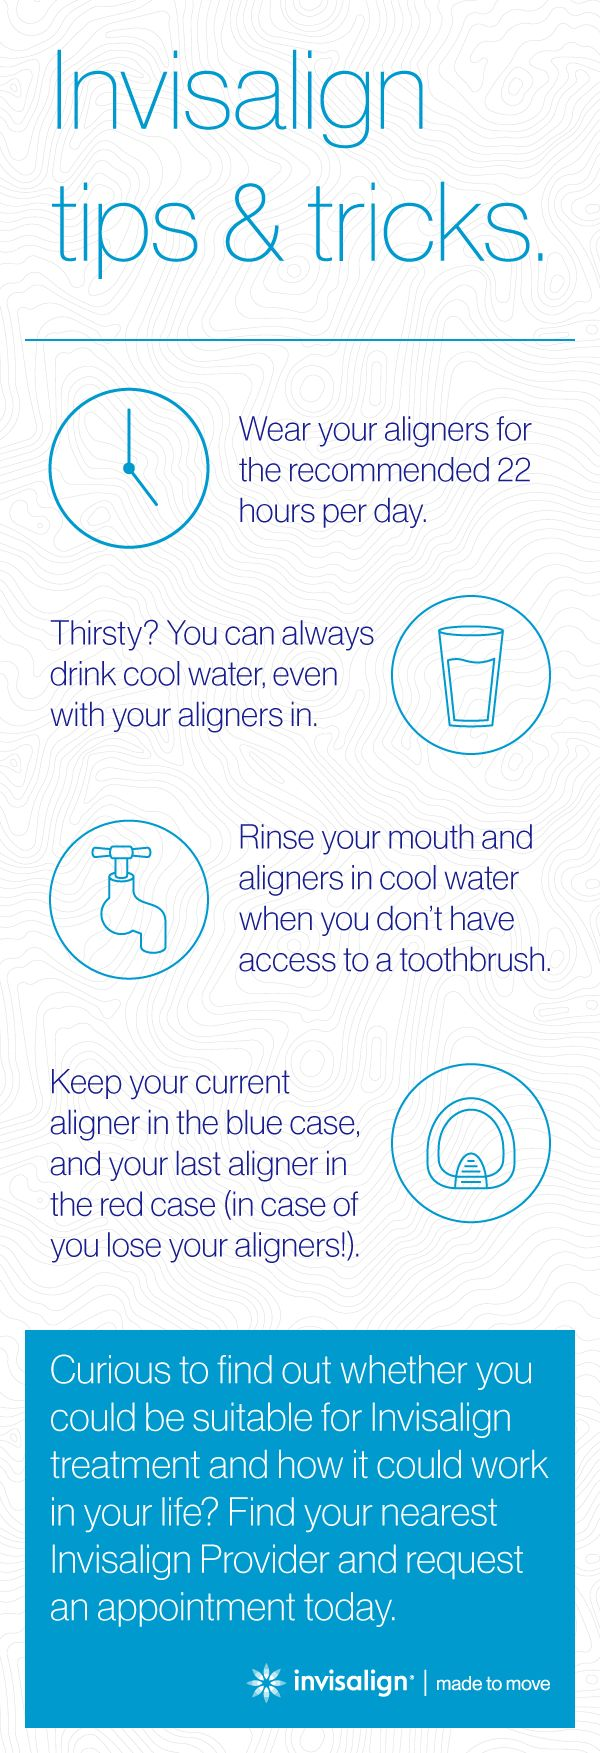 Some handy tips and tricks for Invisalign treatment to keep you moving forward. Invisalign aligners are removable, so you can continue to do all the things you normally do, from brushing and flossing to eating whatever you like!